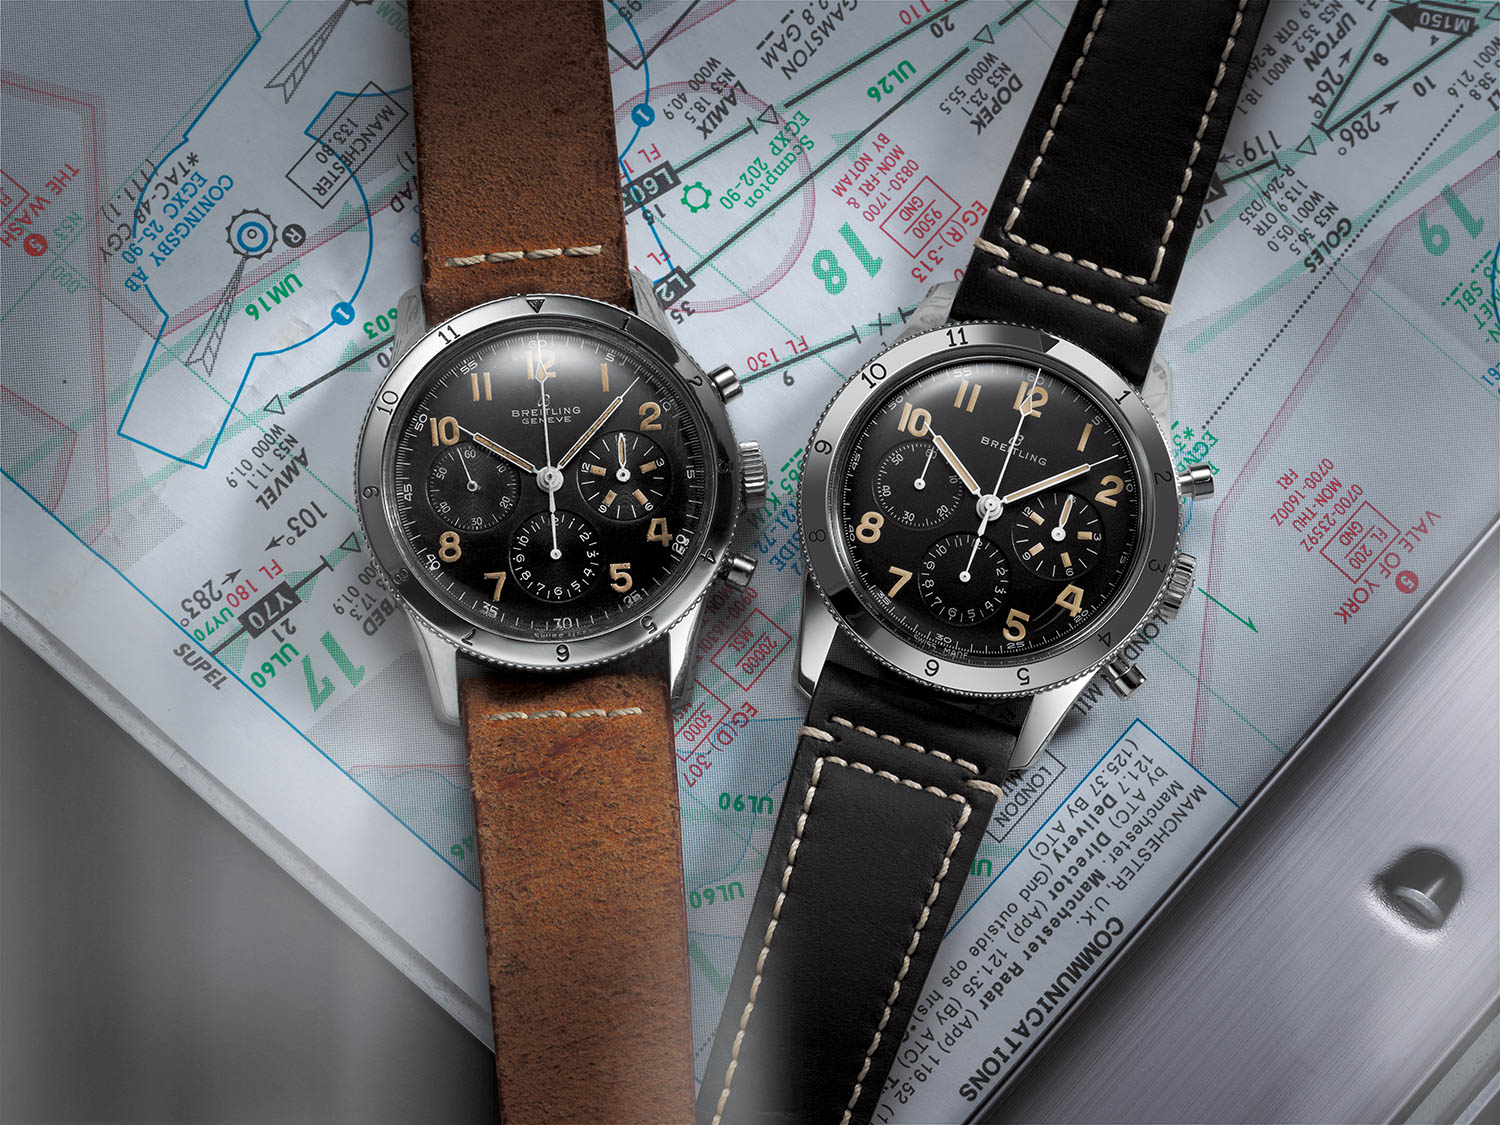 (L-R) A 1953 original next to the new Breitling AVI Ref. 765 1953 Re-Edition